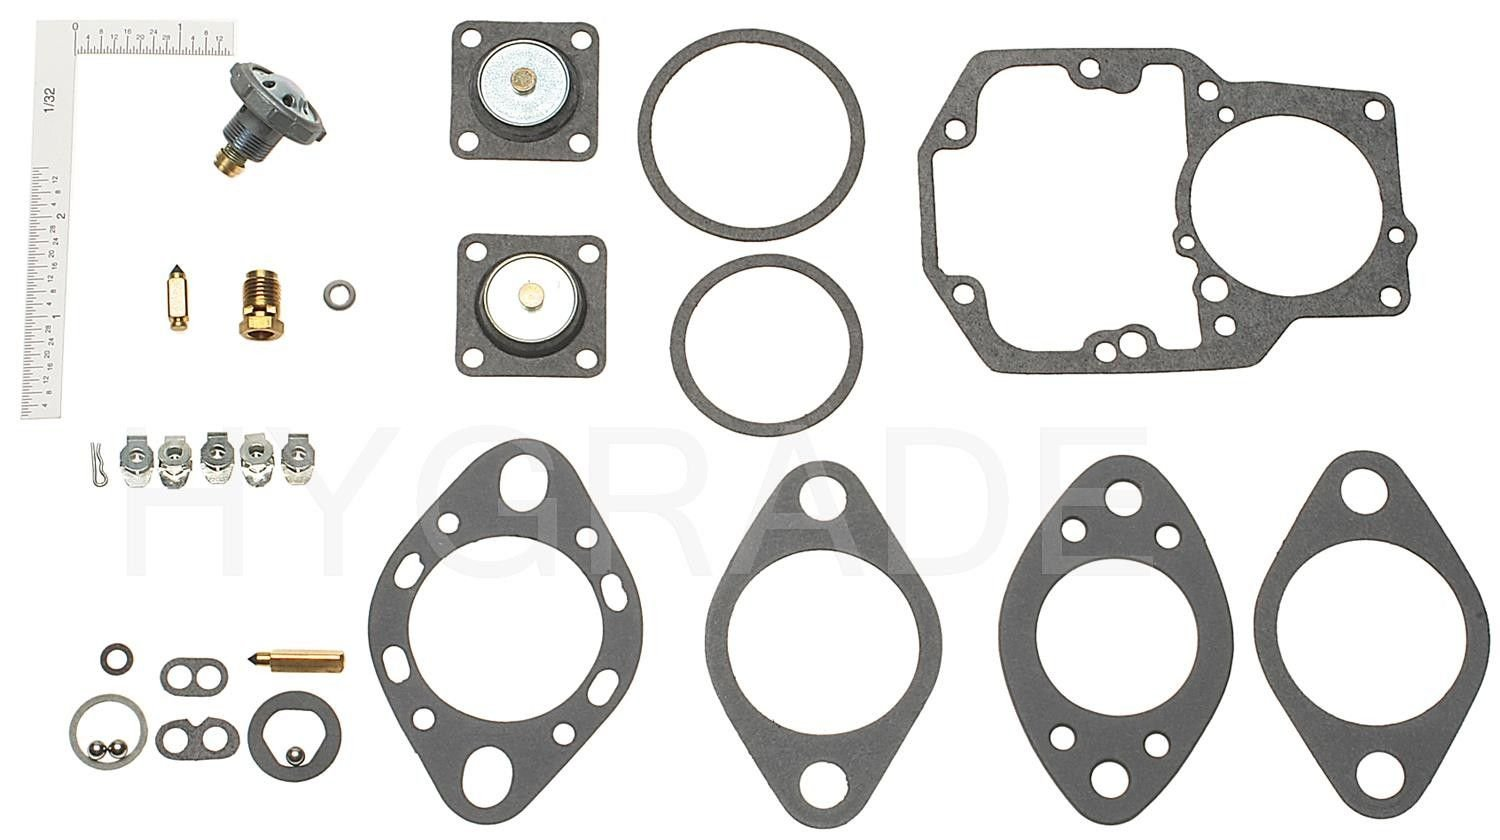 Ford F 250 Carburetor Repair Kit Replacement Hygrade Walker Go Wiring Harness Kits 1965 6 Cyl 39l 901 With Carb 1100 C3tf A B C D E U V Y Z C3uf G C4tf Av Ay Az Ba